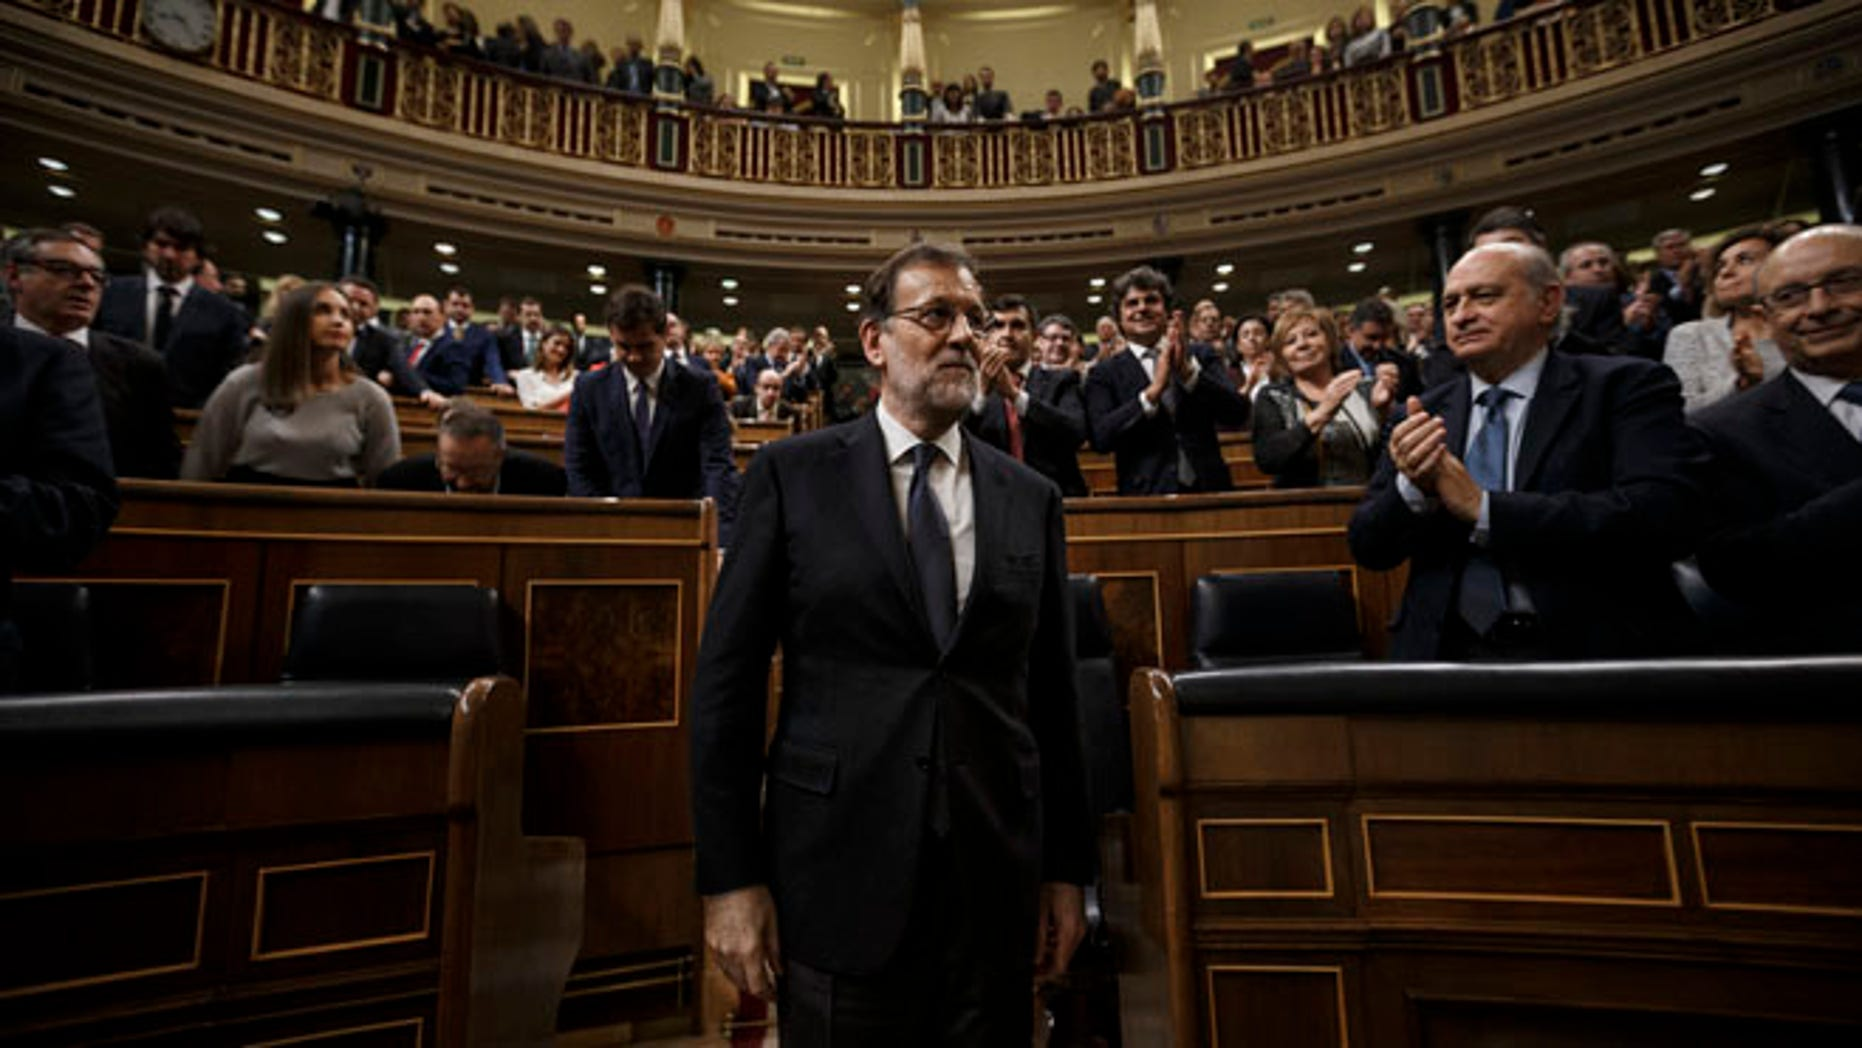 Newly re-elected Spain's Prime Minister Mariano Rajoy on Saturday, Oct. 29, 2016.